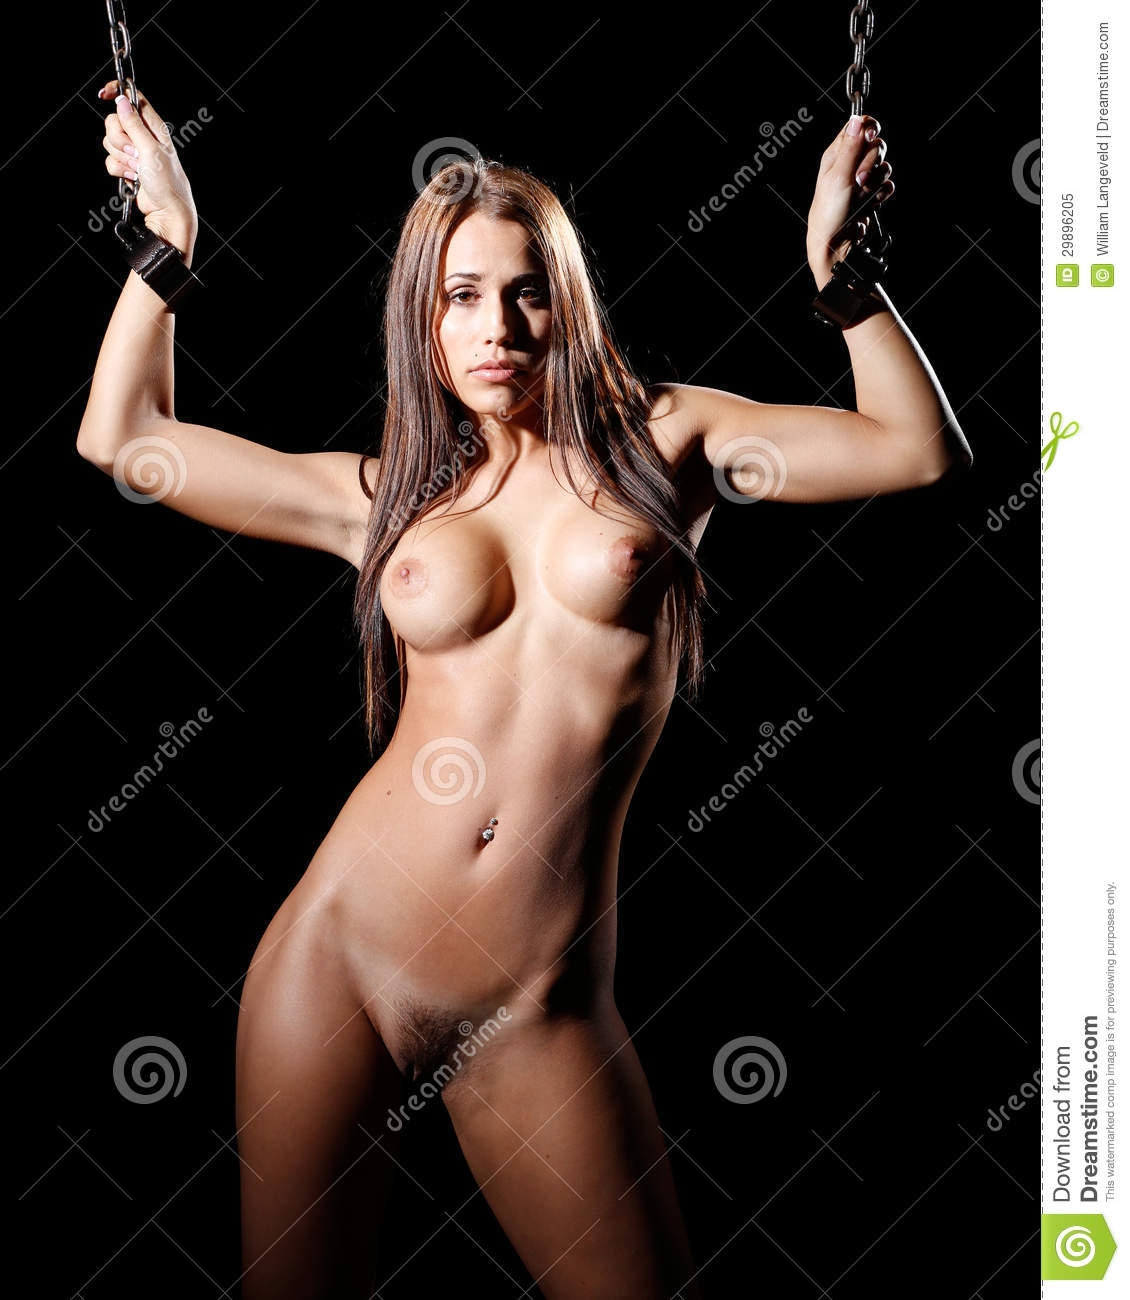 nude british female submissive images